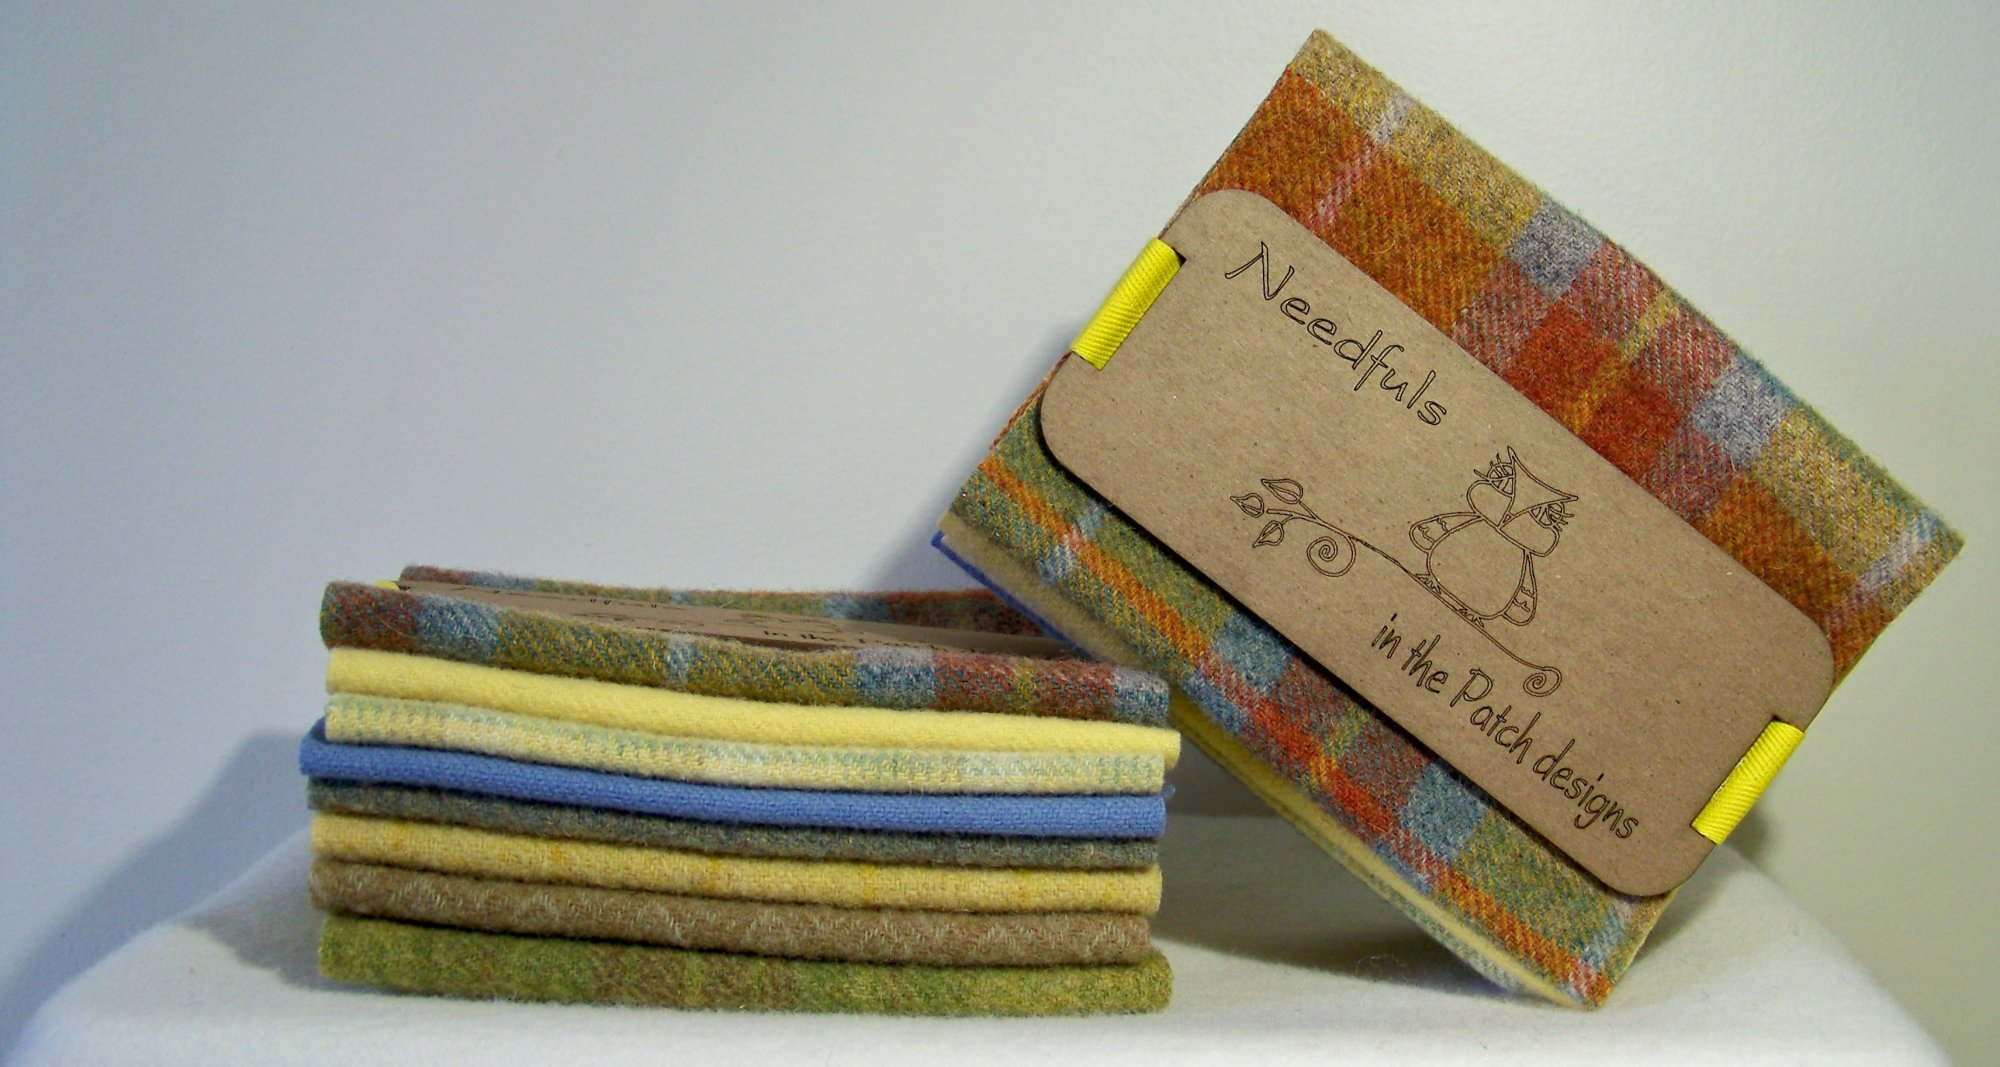 Hand dyed wools projects kits and patterns